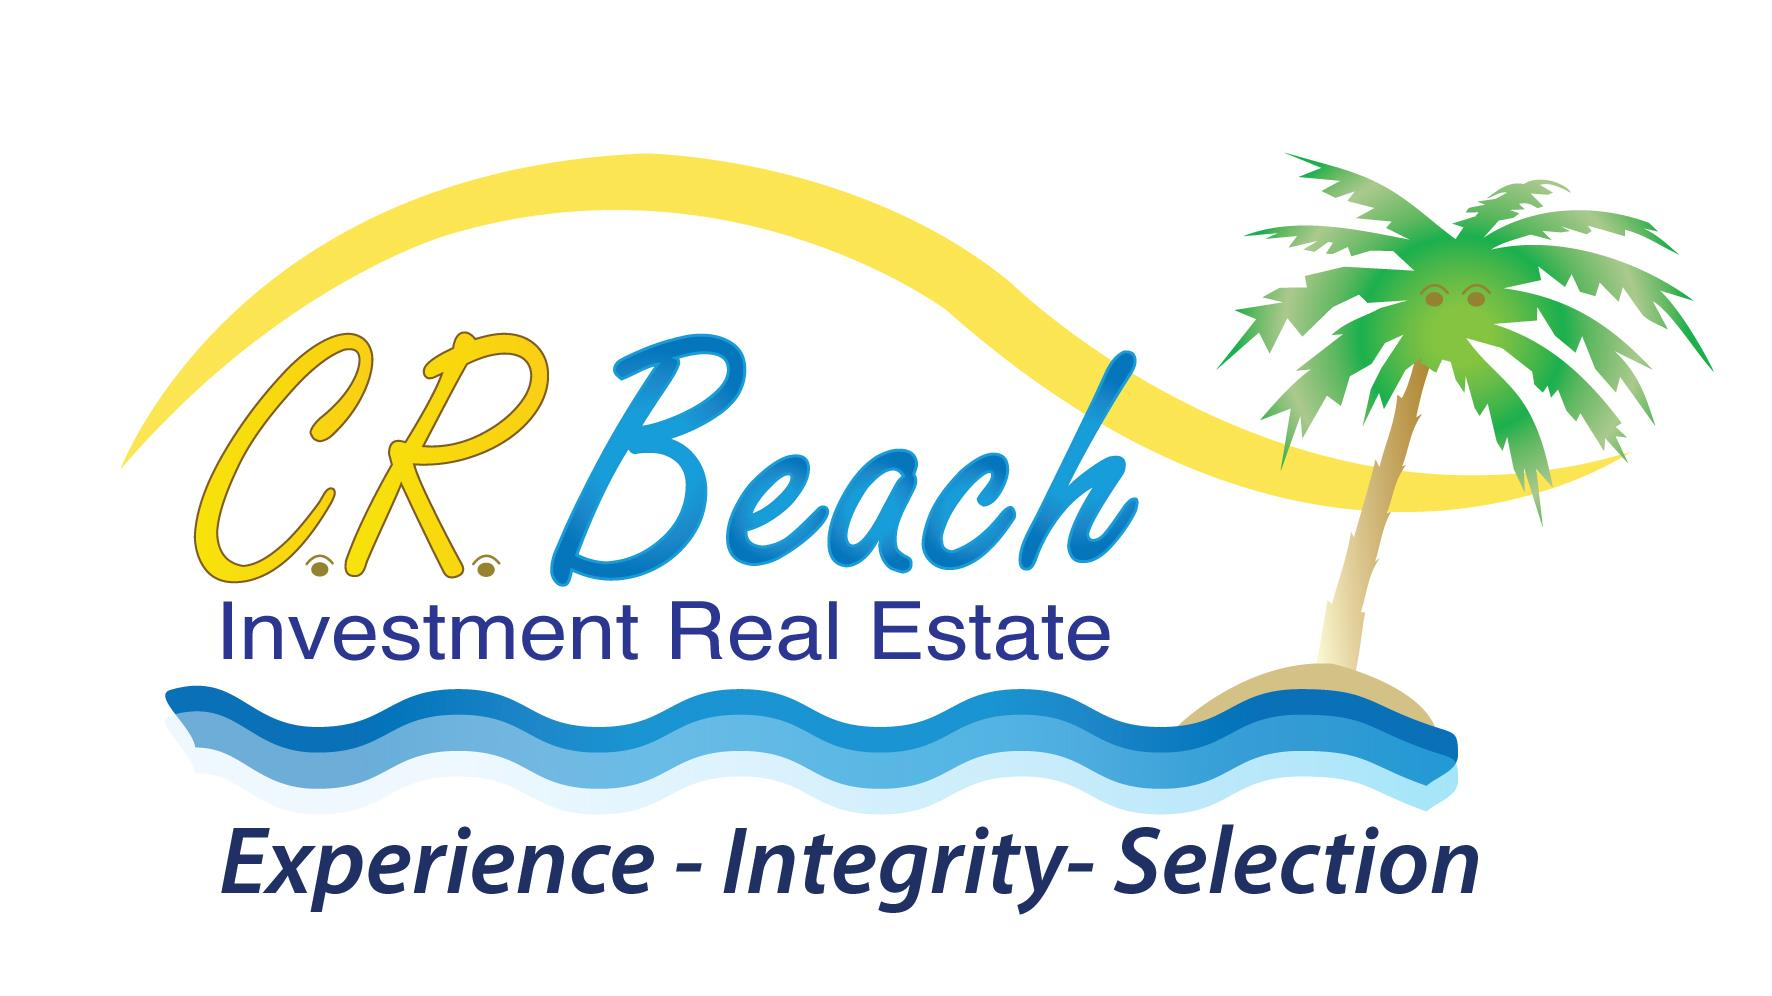 One of the top real estate companies in Costa Rica for beach front properties!